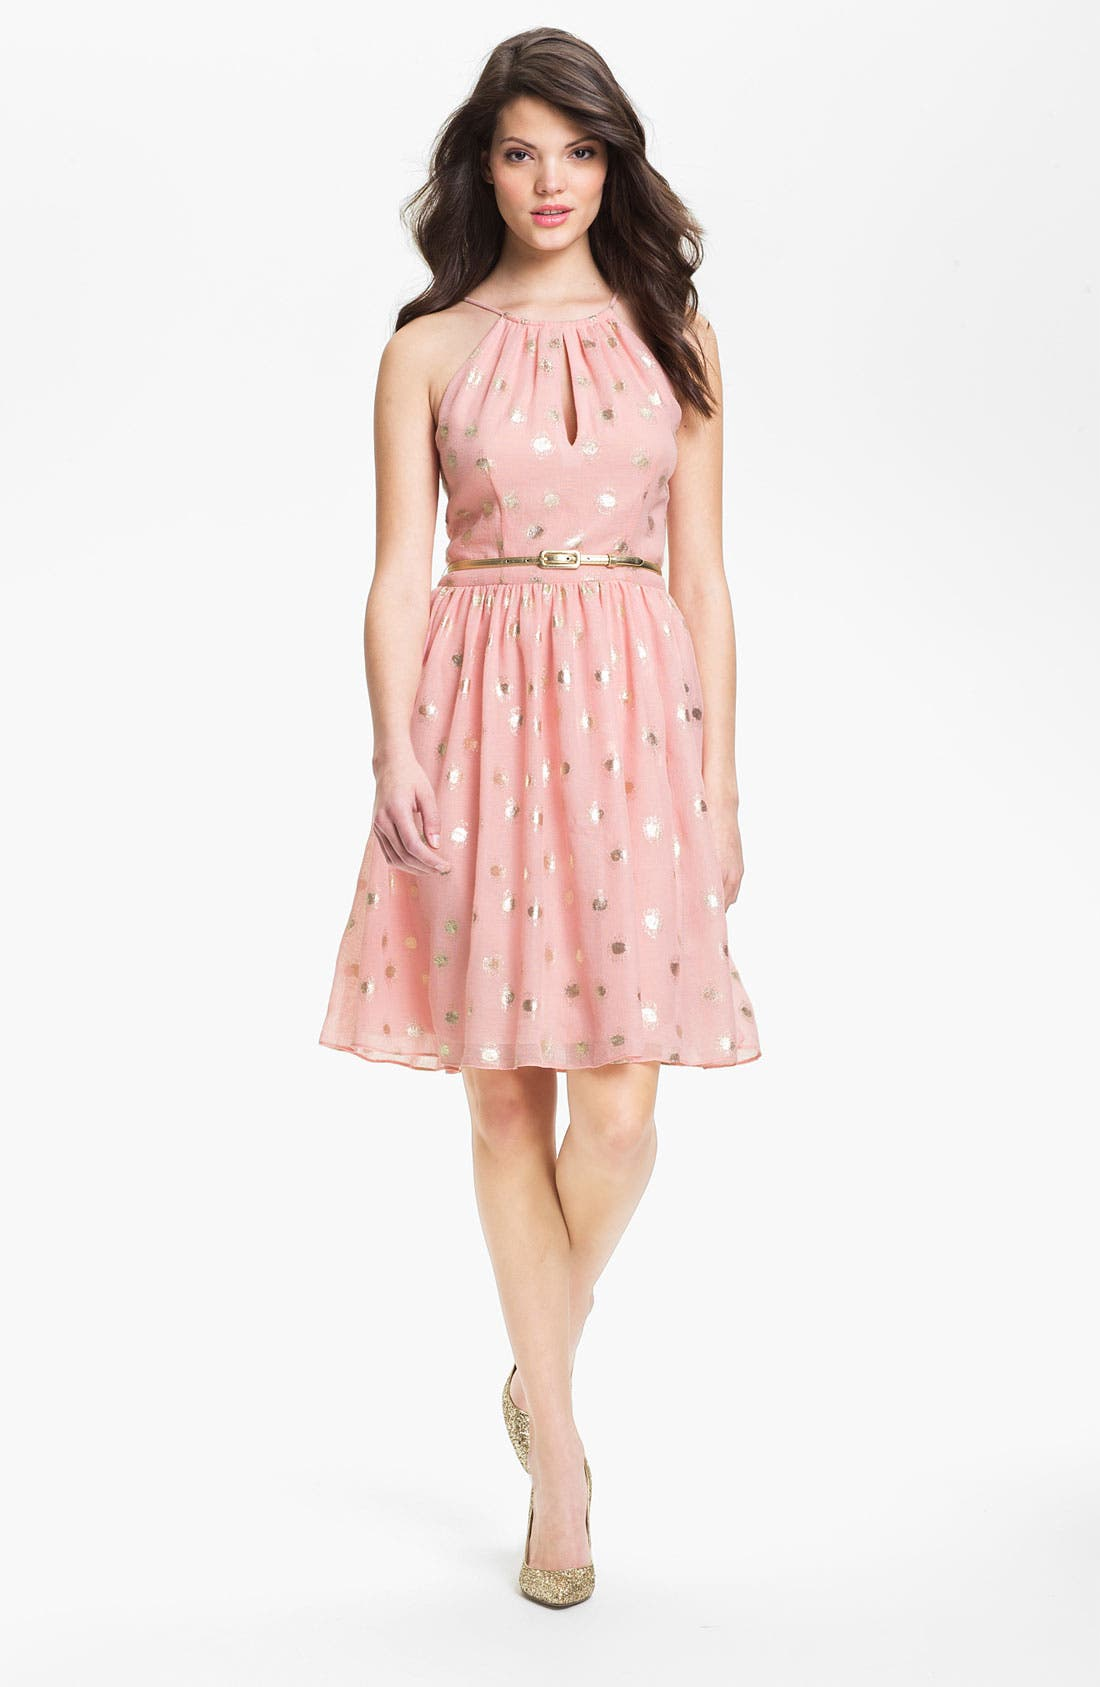 Alternate Image 1 Selected - Maggy London Metallic Dot Fit & Flare Dress